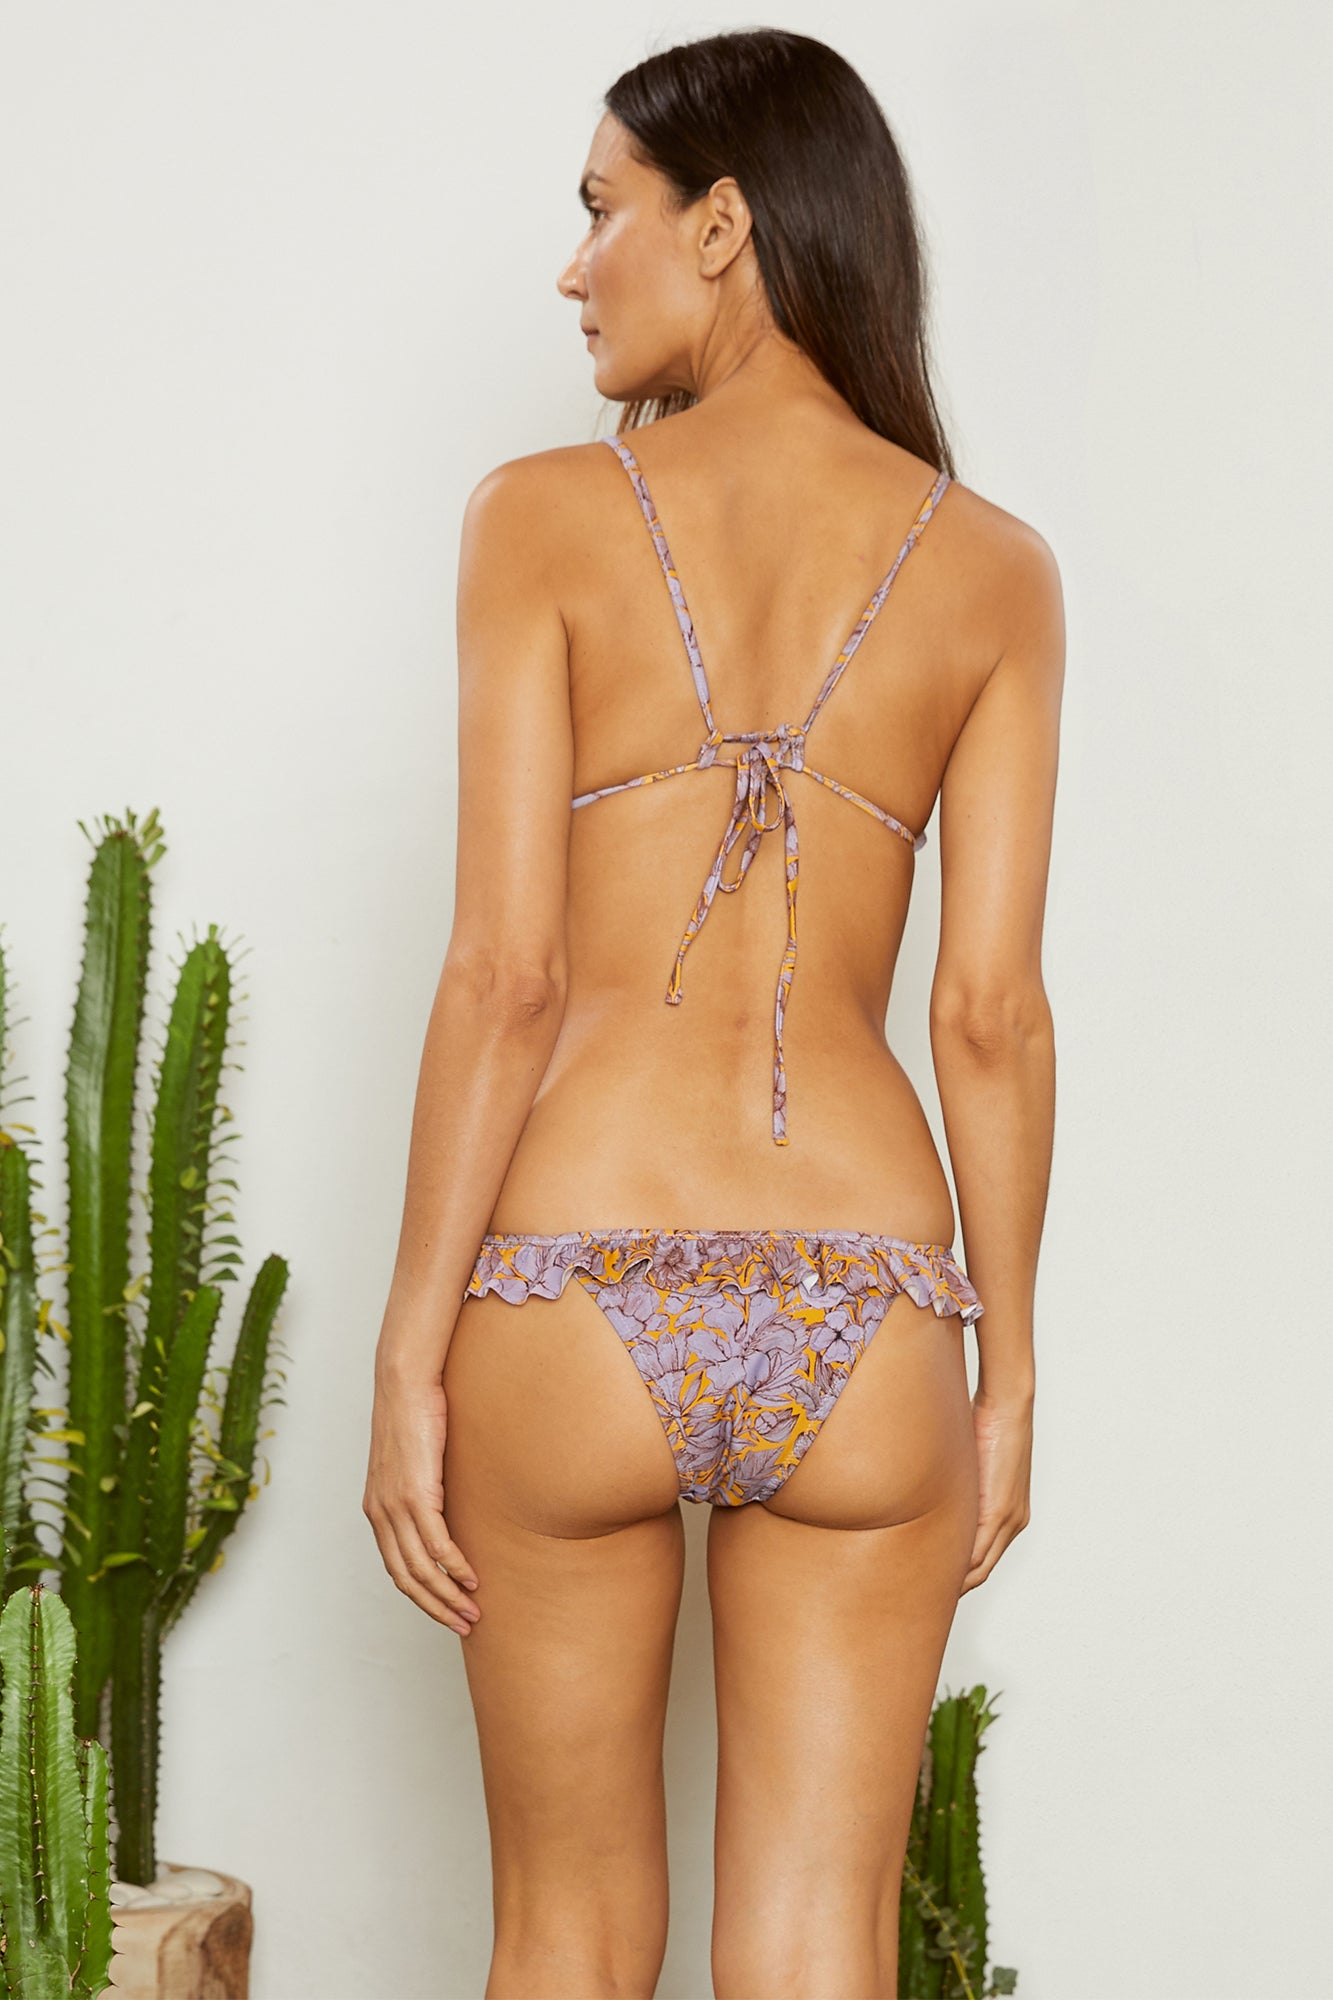 Carolina K Louise Bikini Bottom Purple Peonies